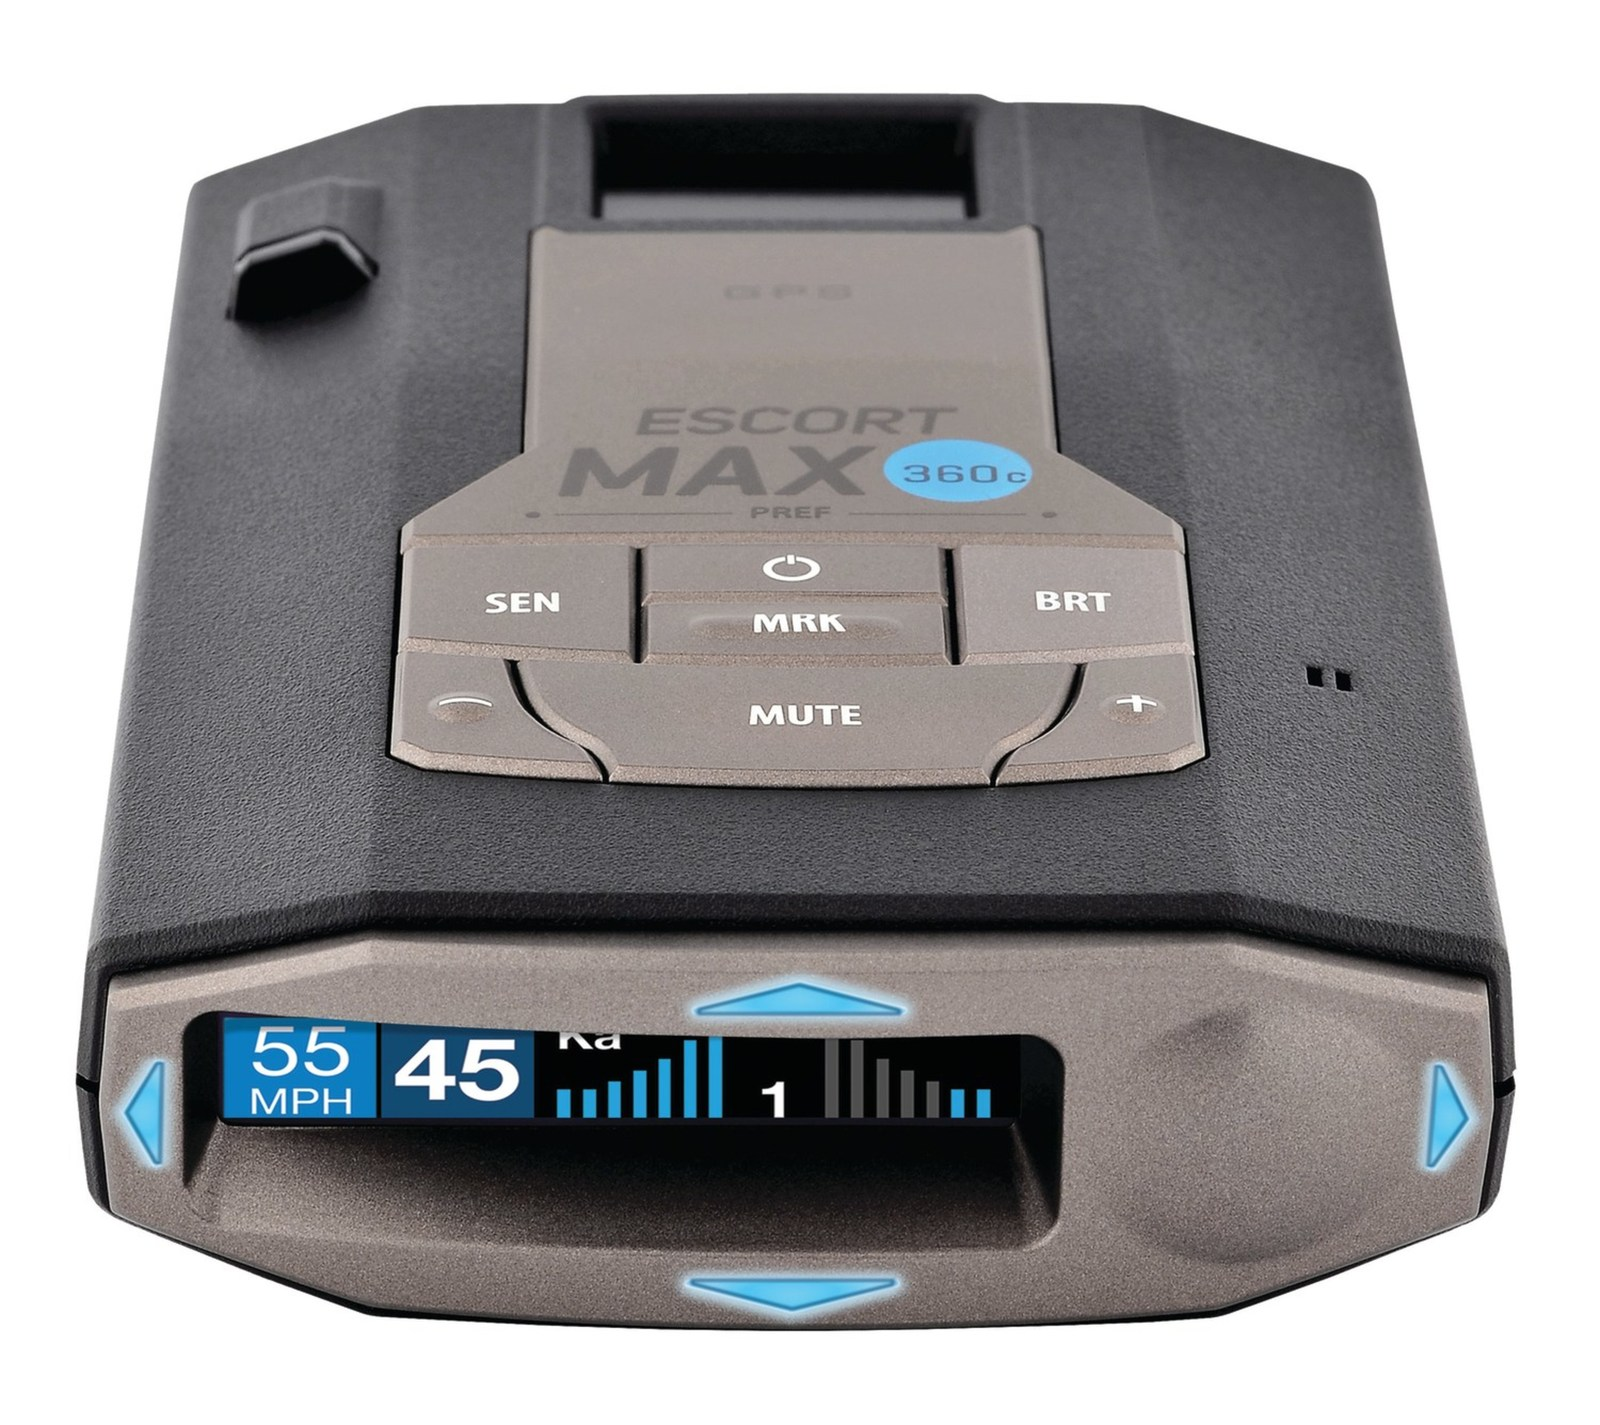 ESCORT MAX 360c, the first radar and laser detector designed for the connected car unveiled